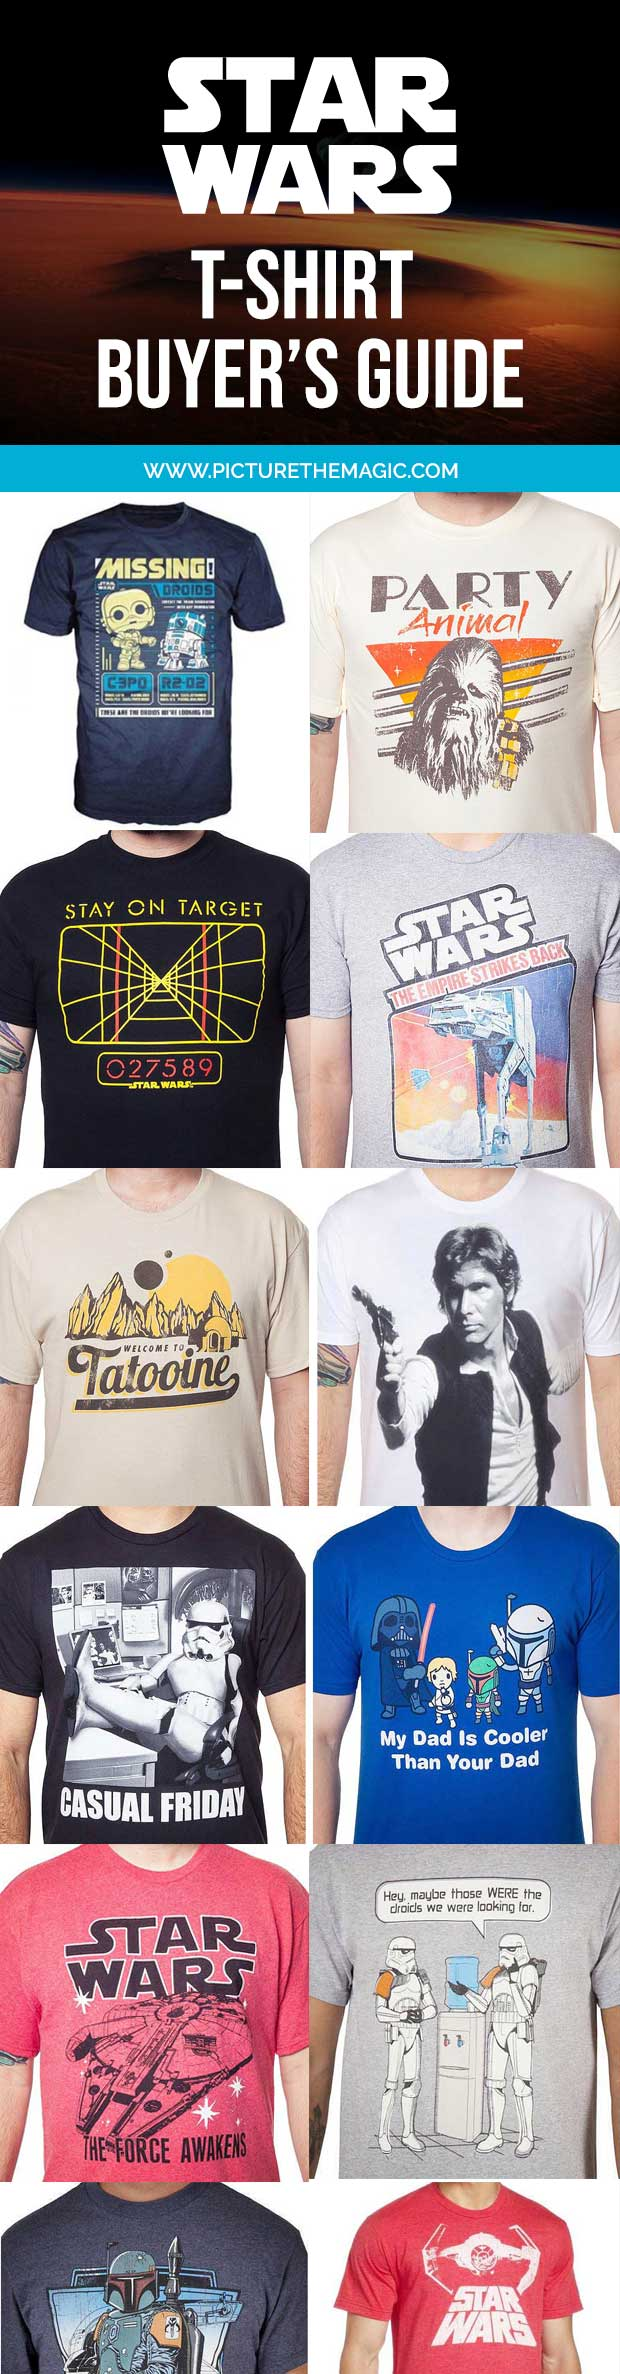 101 EPIC Star Wars T-Shirts! The best Princess Leia, Darth Vader, Yoda, Han Solo, Kylo Ren, and Chewbacca tshirts of the year.